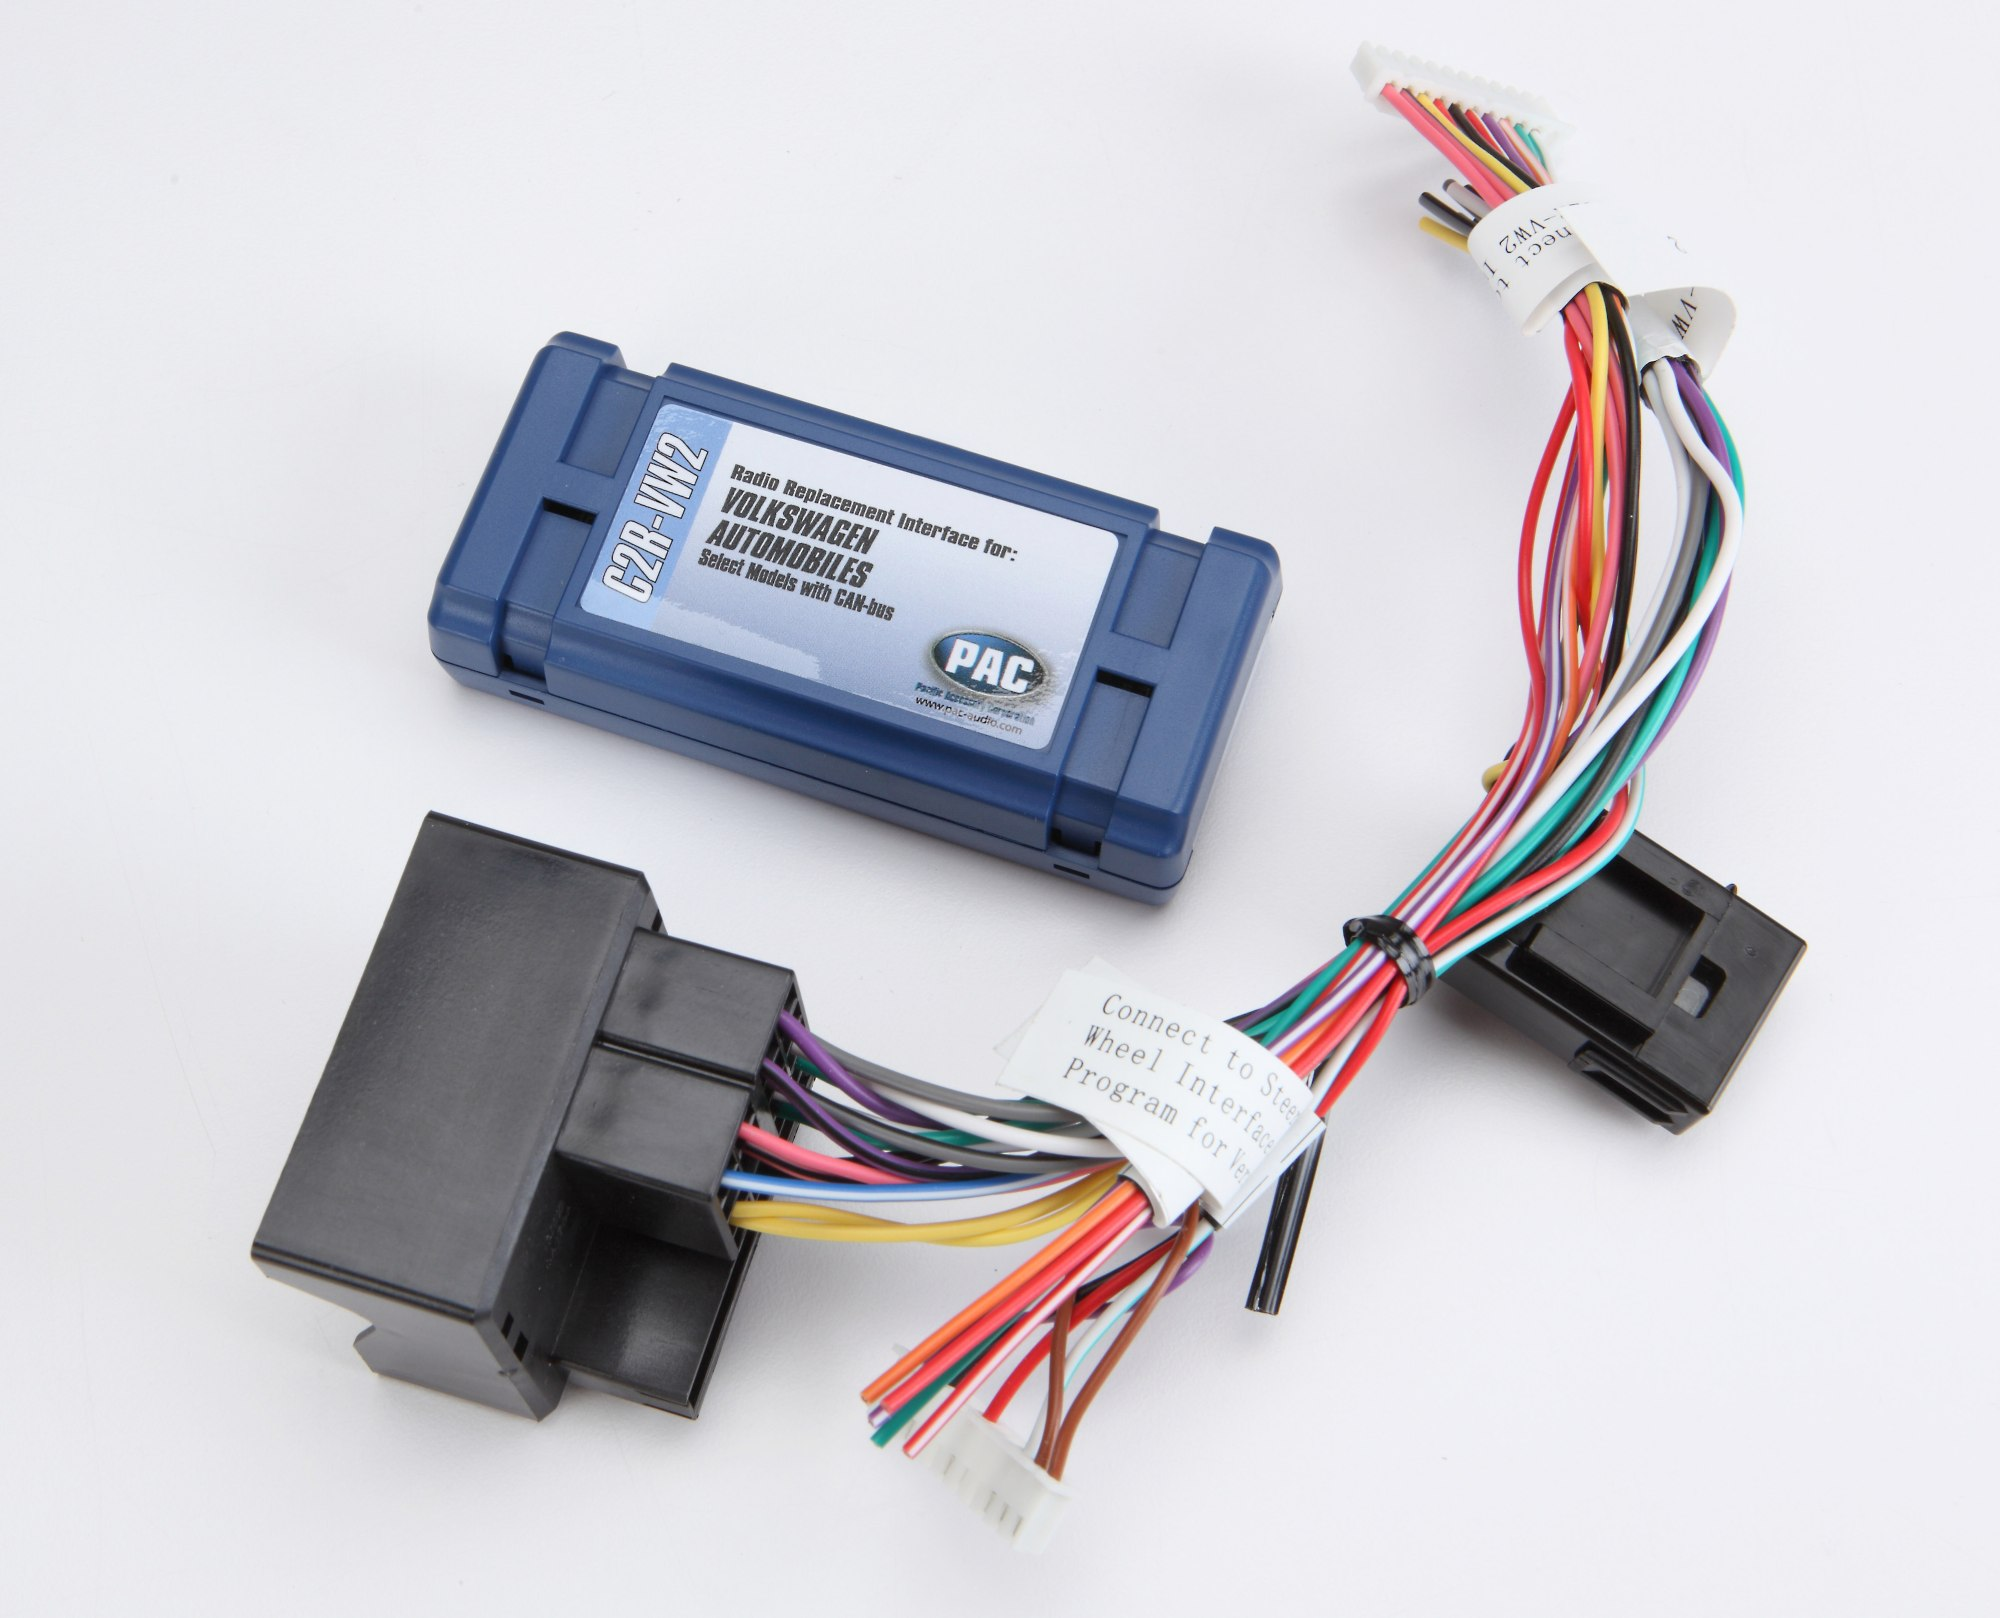 hight resolution of pac c2r vw2 wiring interface connect a new car stereo in select 2002 up volkswagen vehicles at crutchfield com